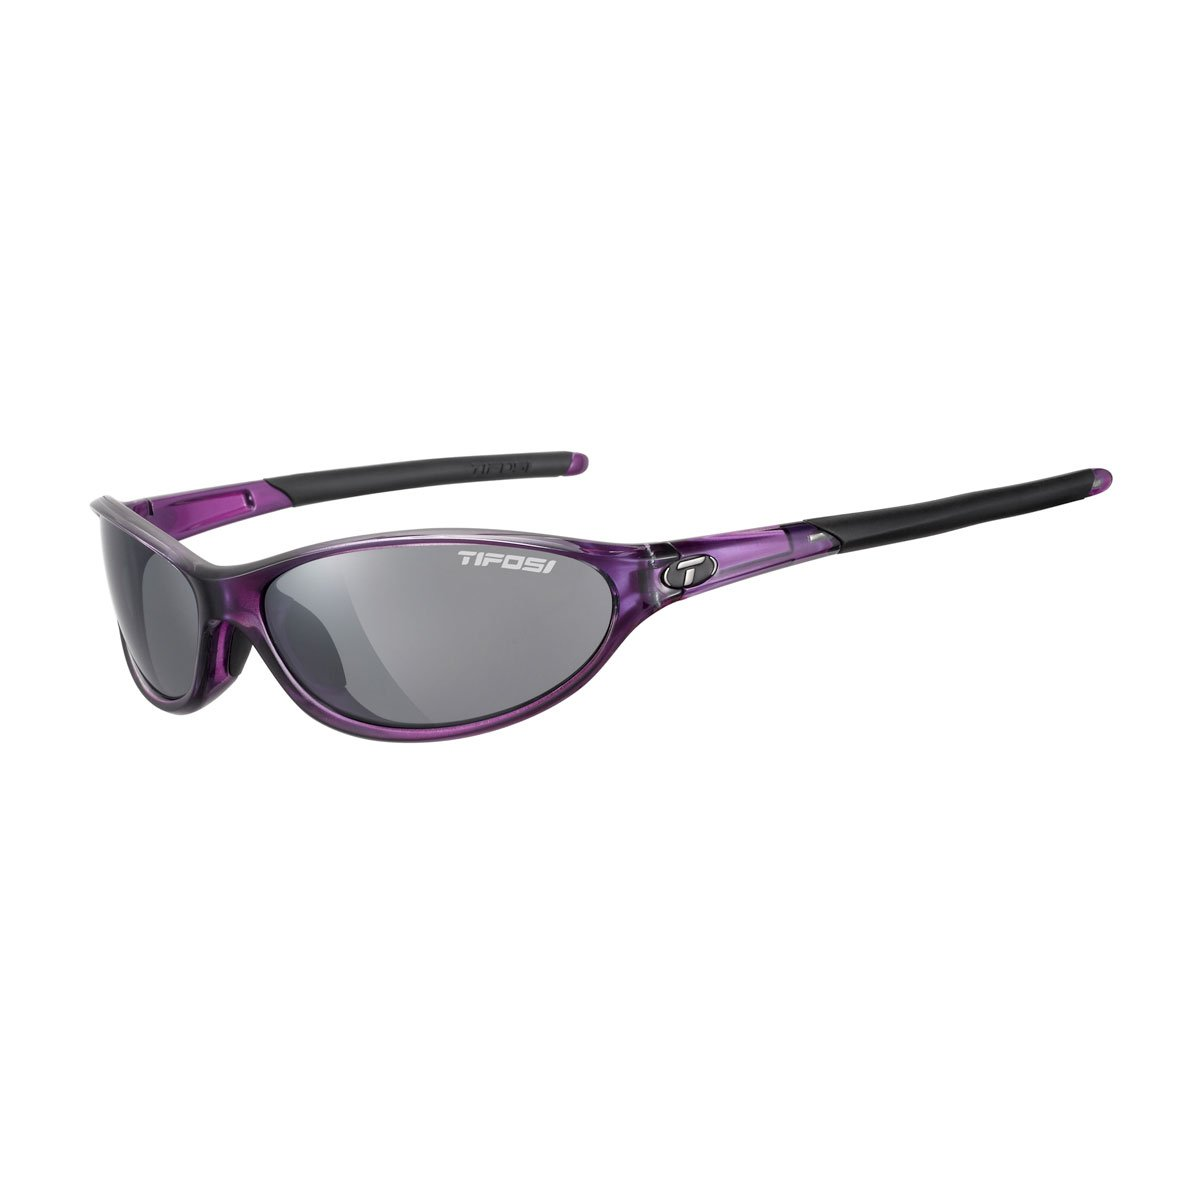 Tifosi ALPE 2.0 Crystal Purple Smoke Polarized Sunglasses